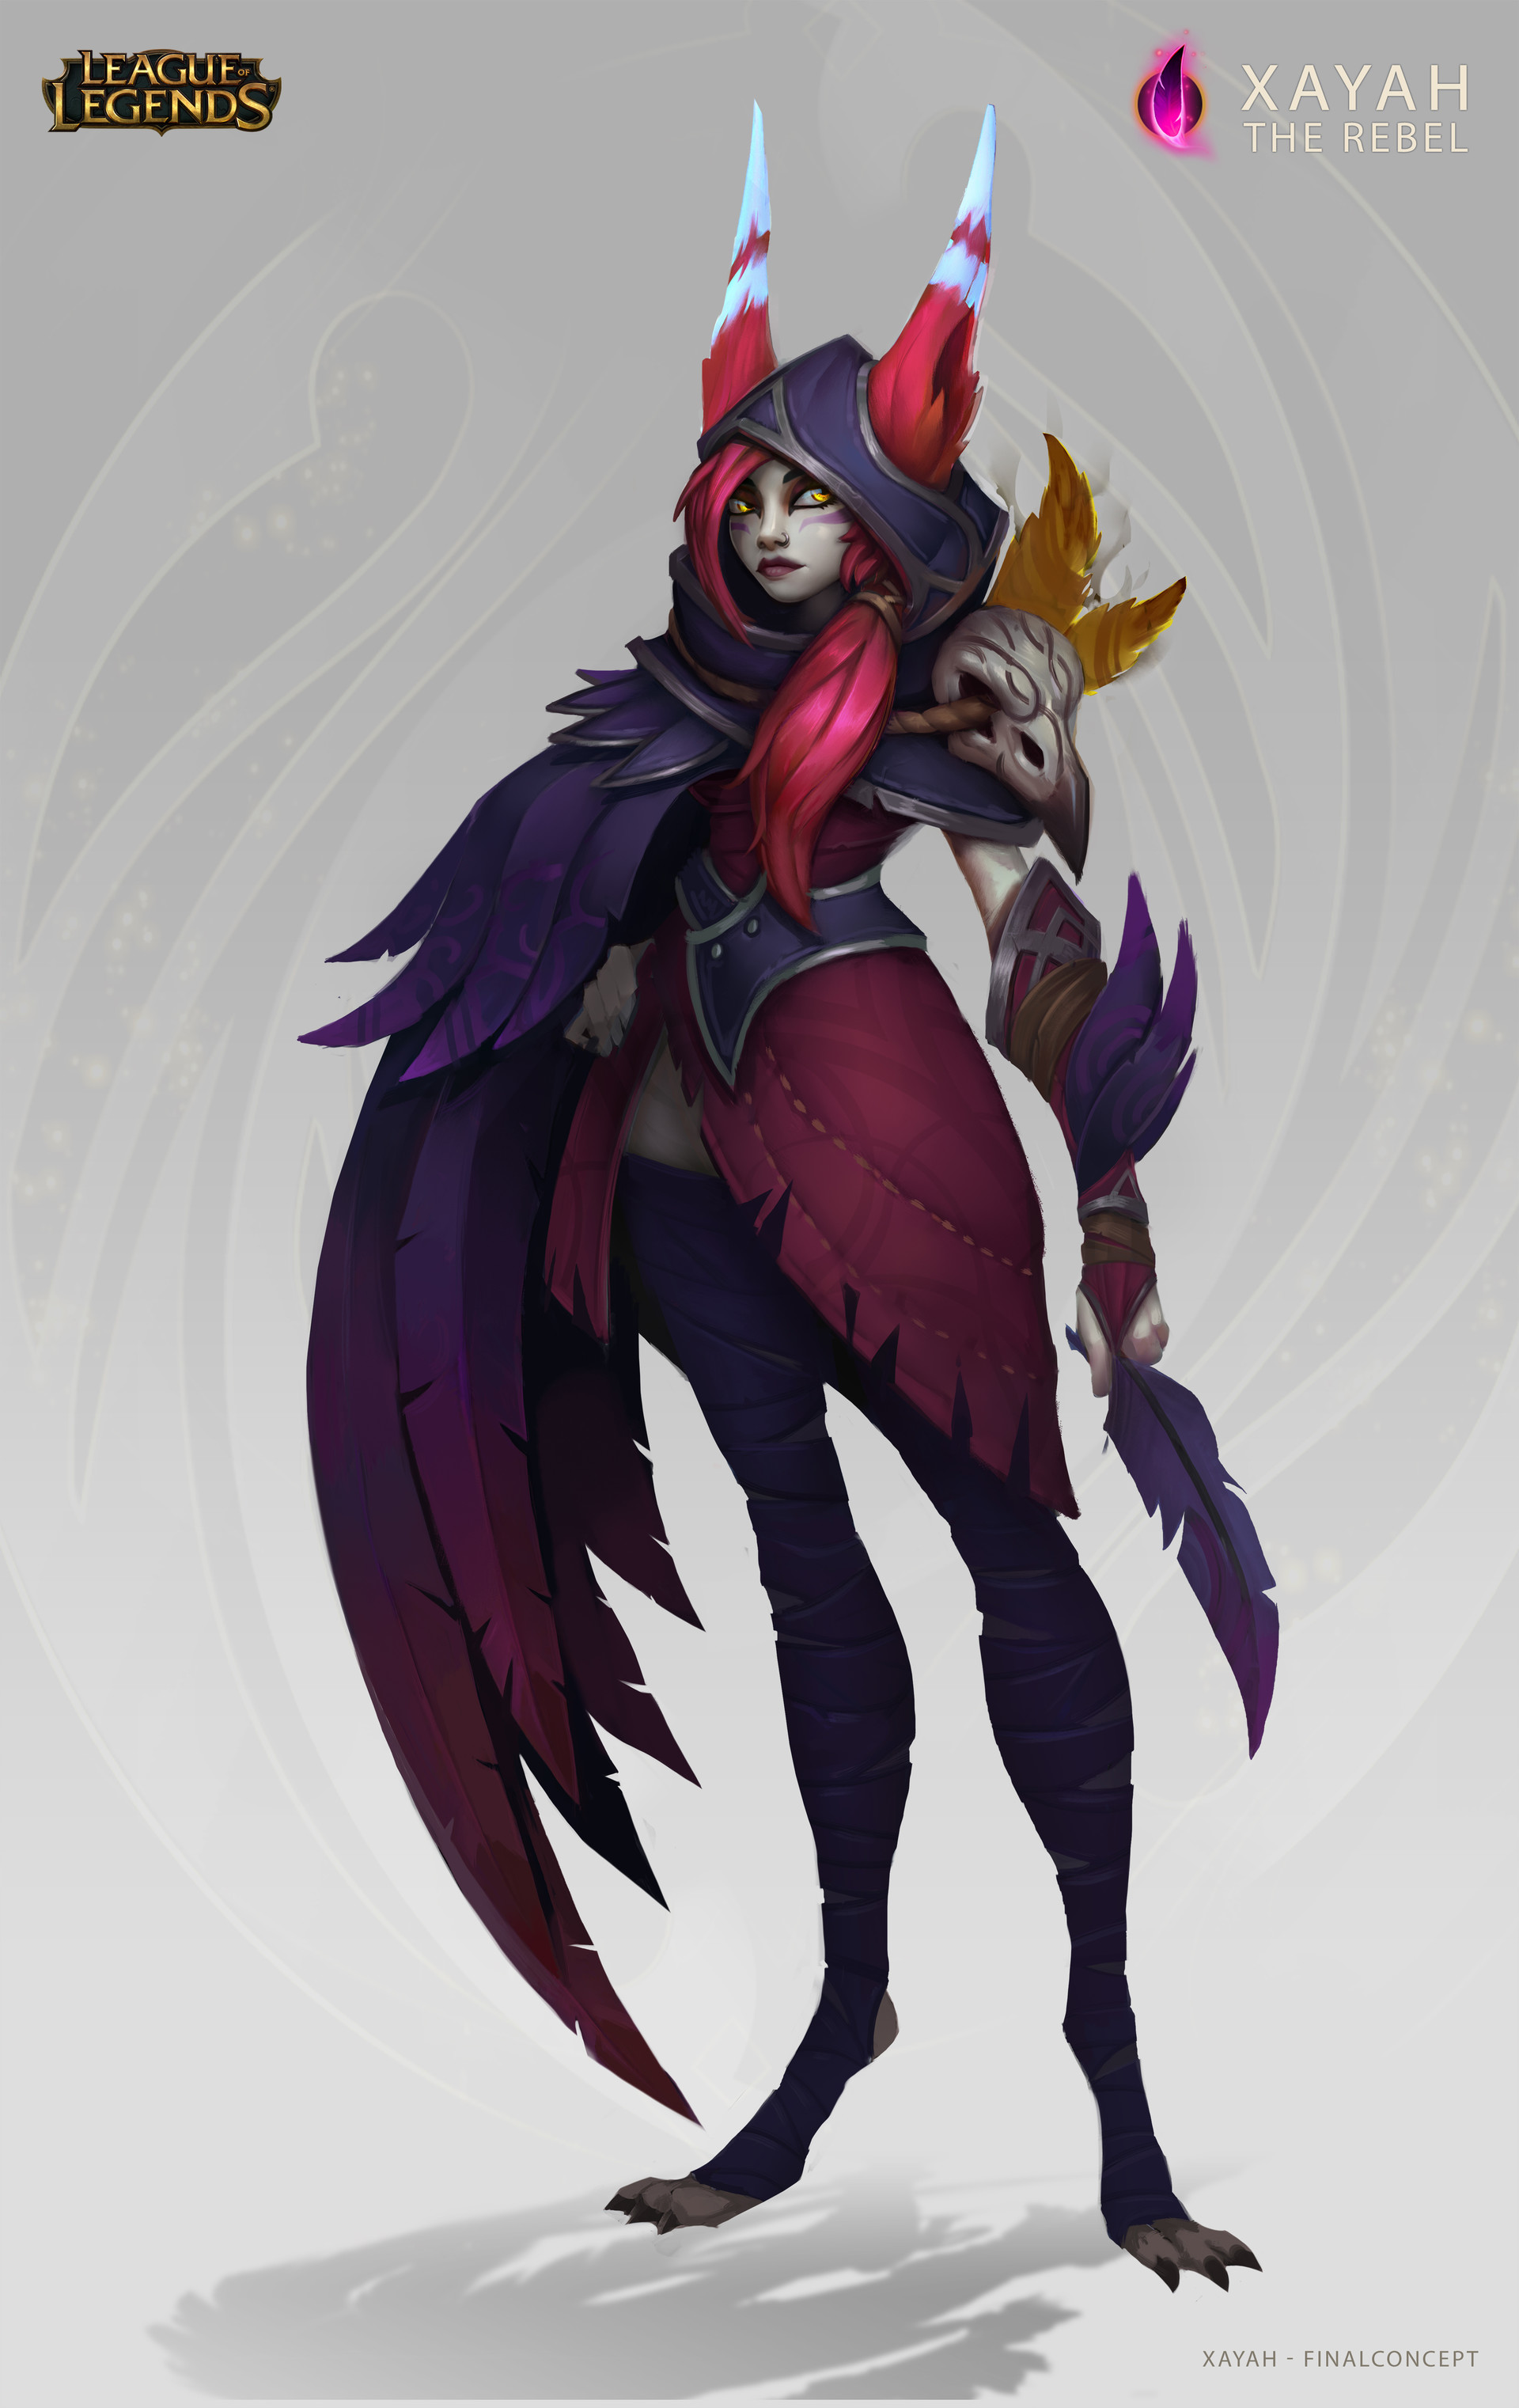 Xayah the Rebel - Concept Art- League of Legends